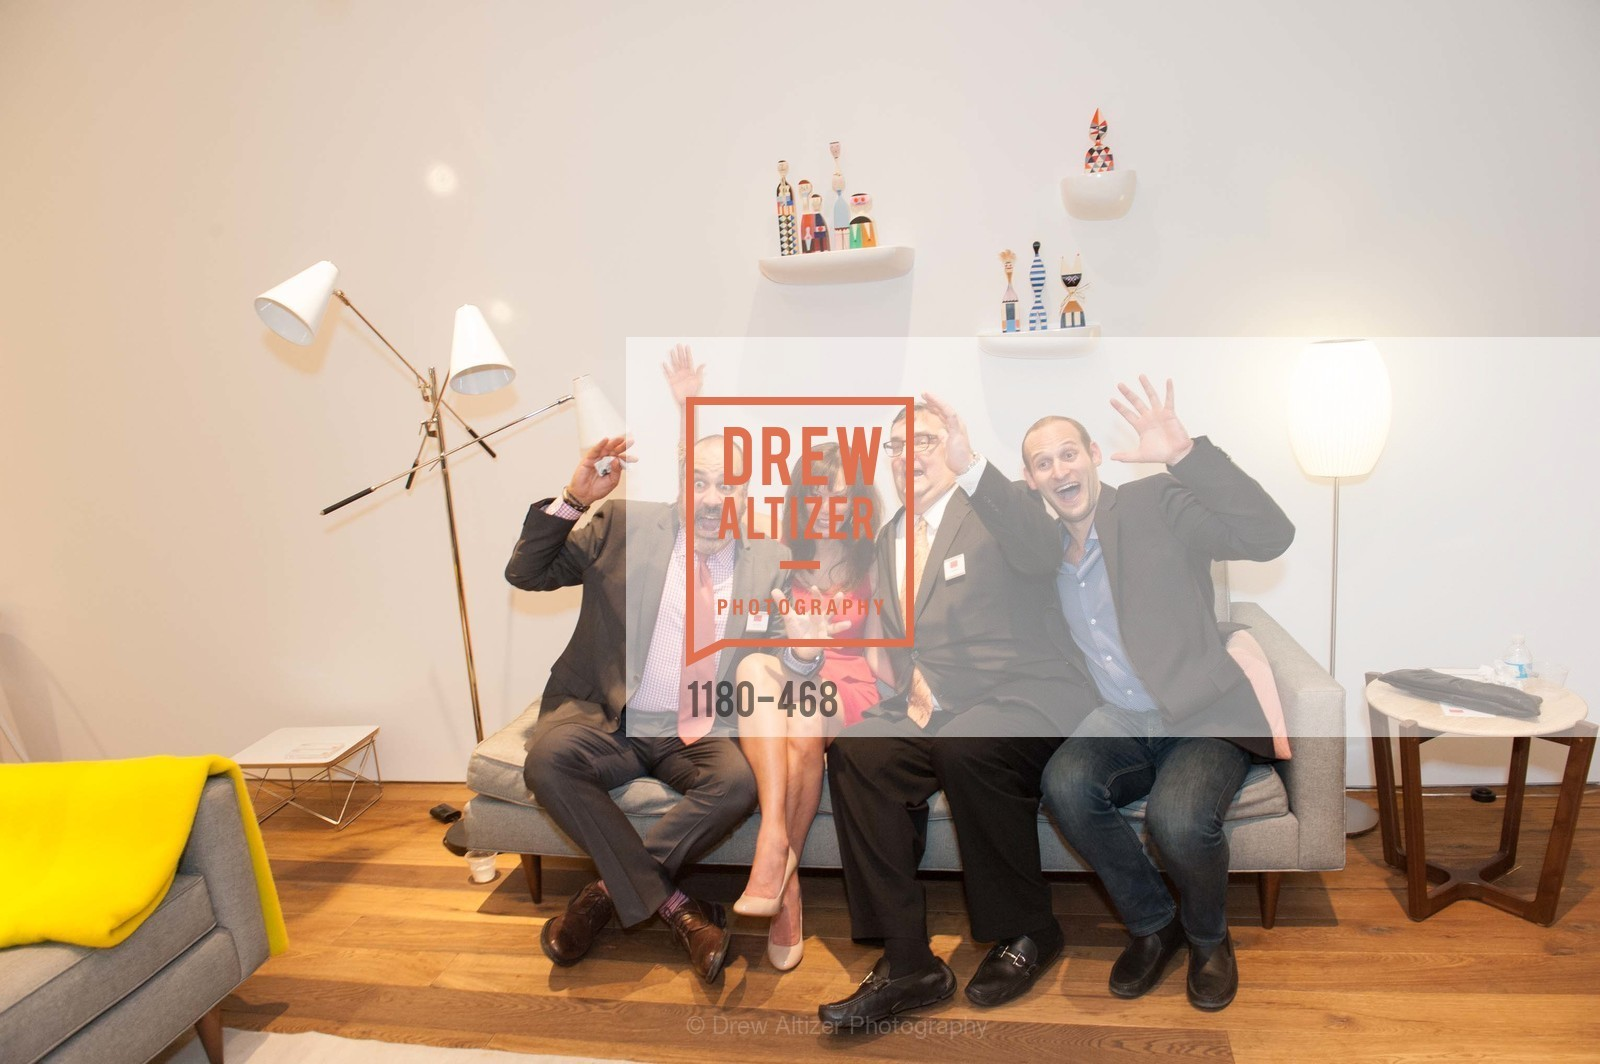 John Edelman, Jocelyn Kung, John McPhee, Jake Gould, DESIGN WITHIN REACH Studio Opening, US. US, January 21st, 2014,Drew Altizer, Drew Altizer Photography, full-service agency, private events, San Francisco photographer, photographer california